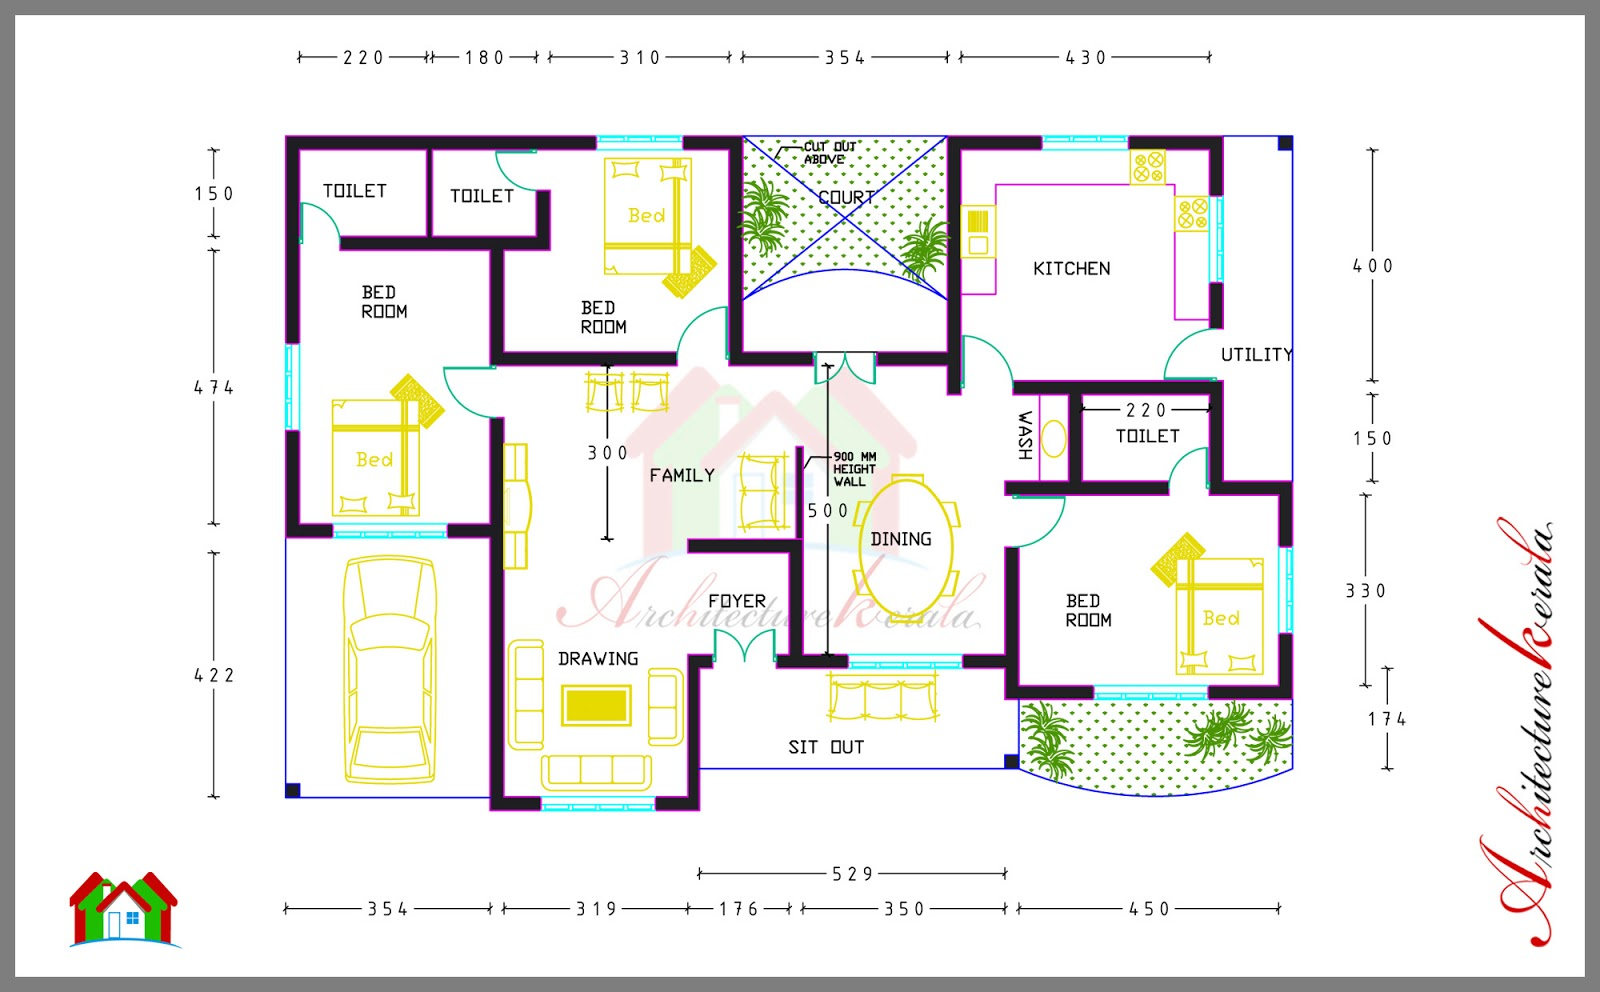 3 bed room house plan with room dimensions architecture for Bedroom size